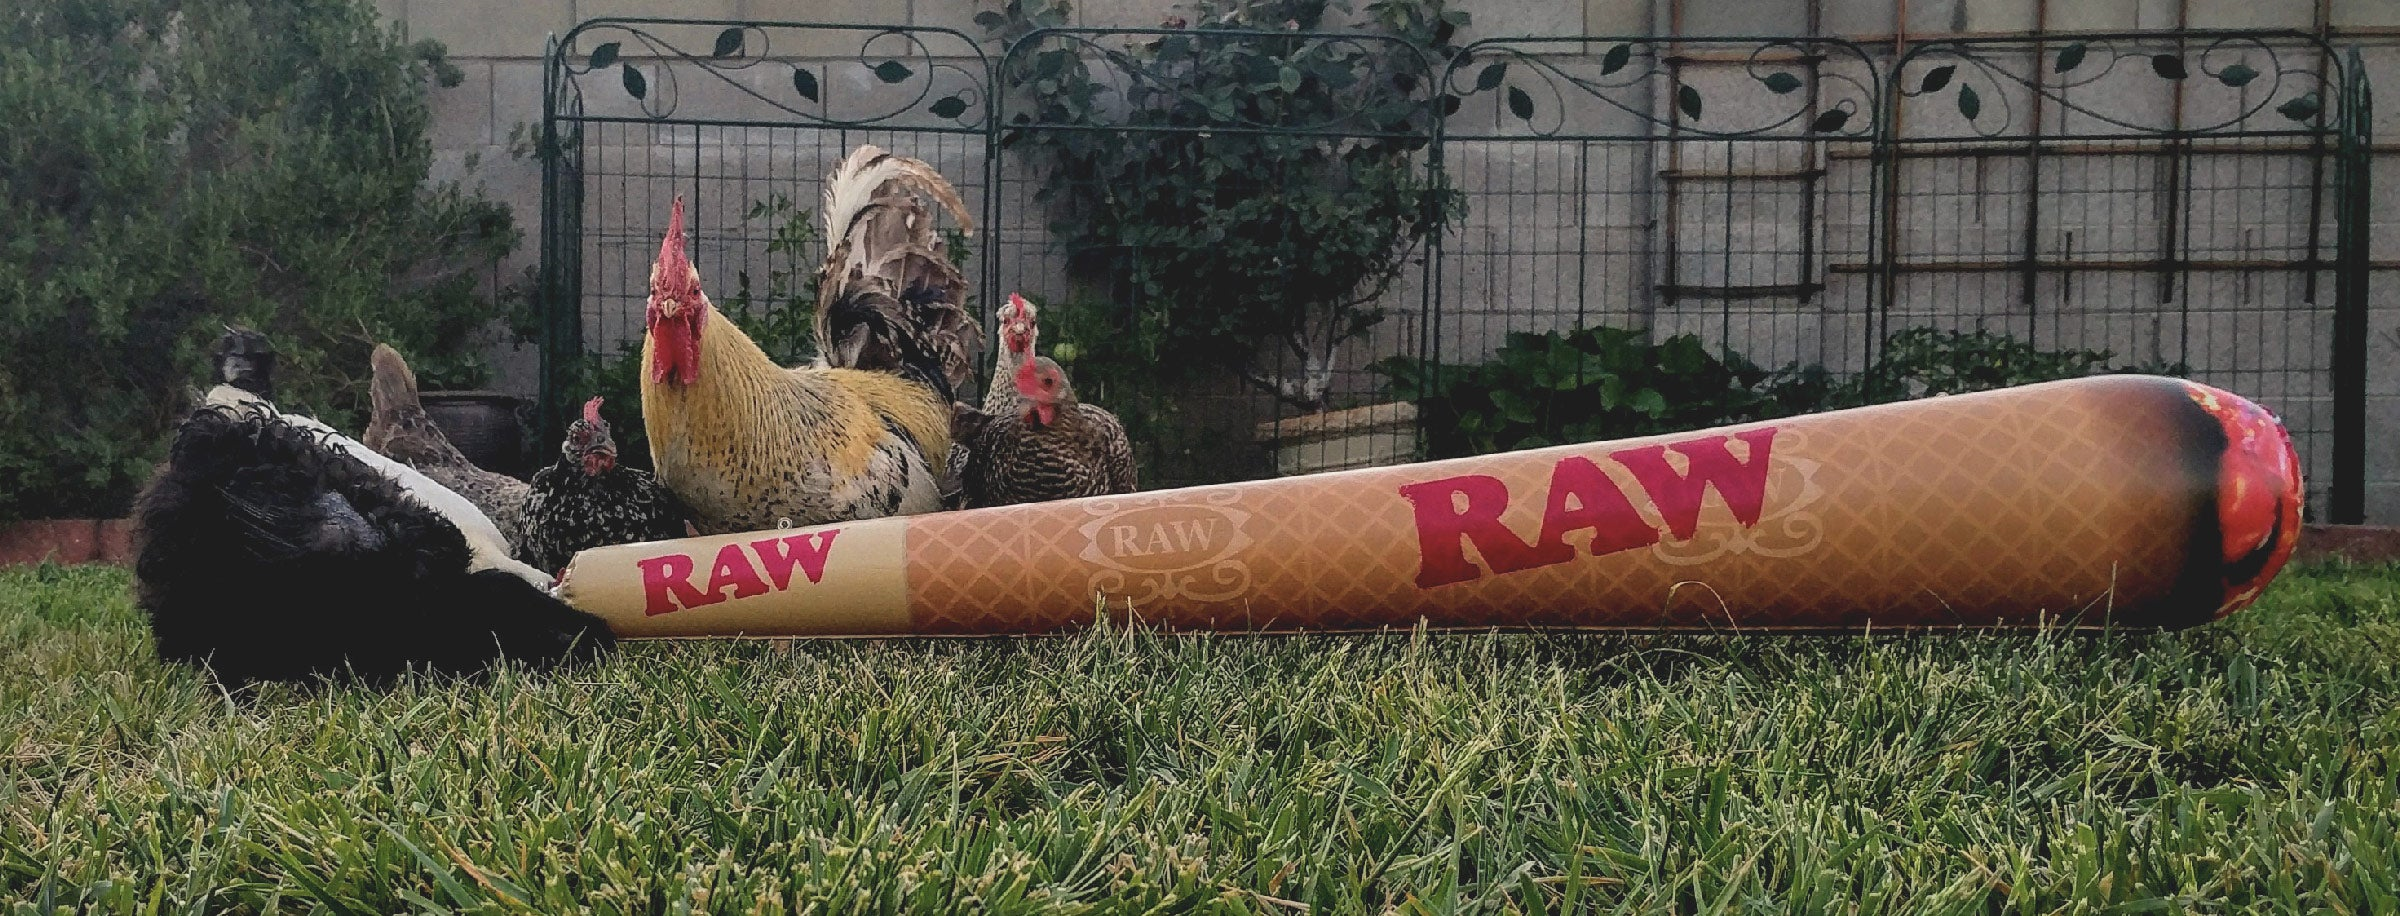 RAW Cone inflatable - 6 ft